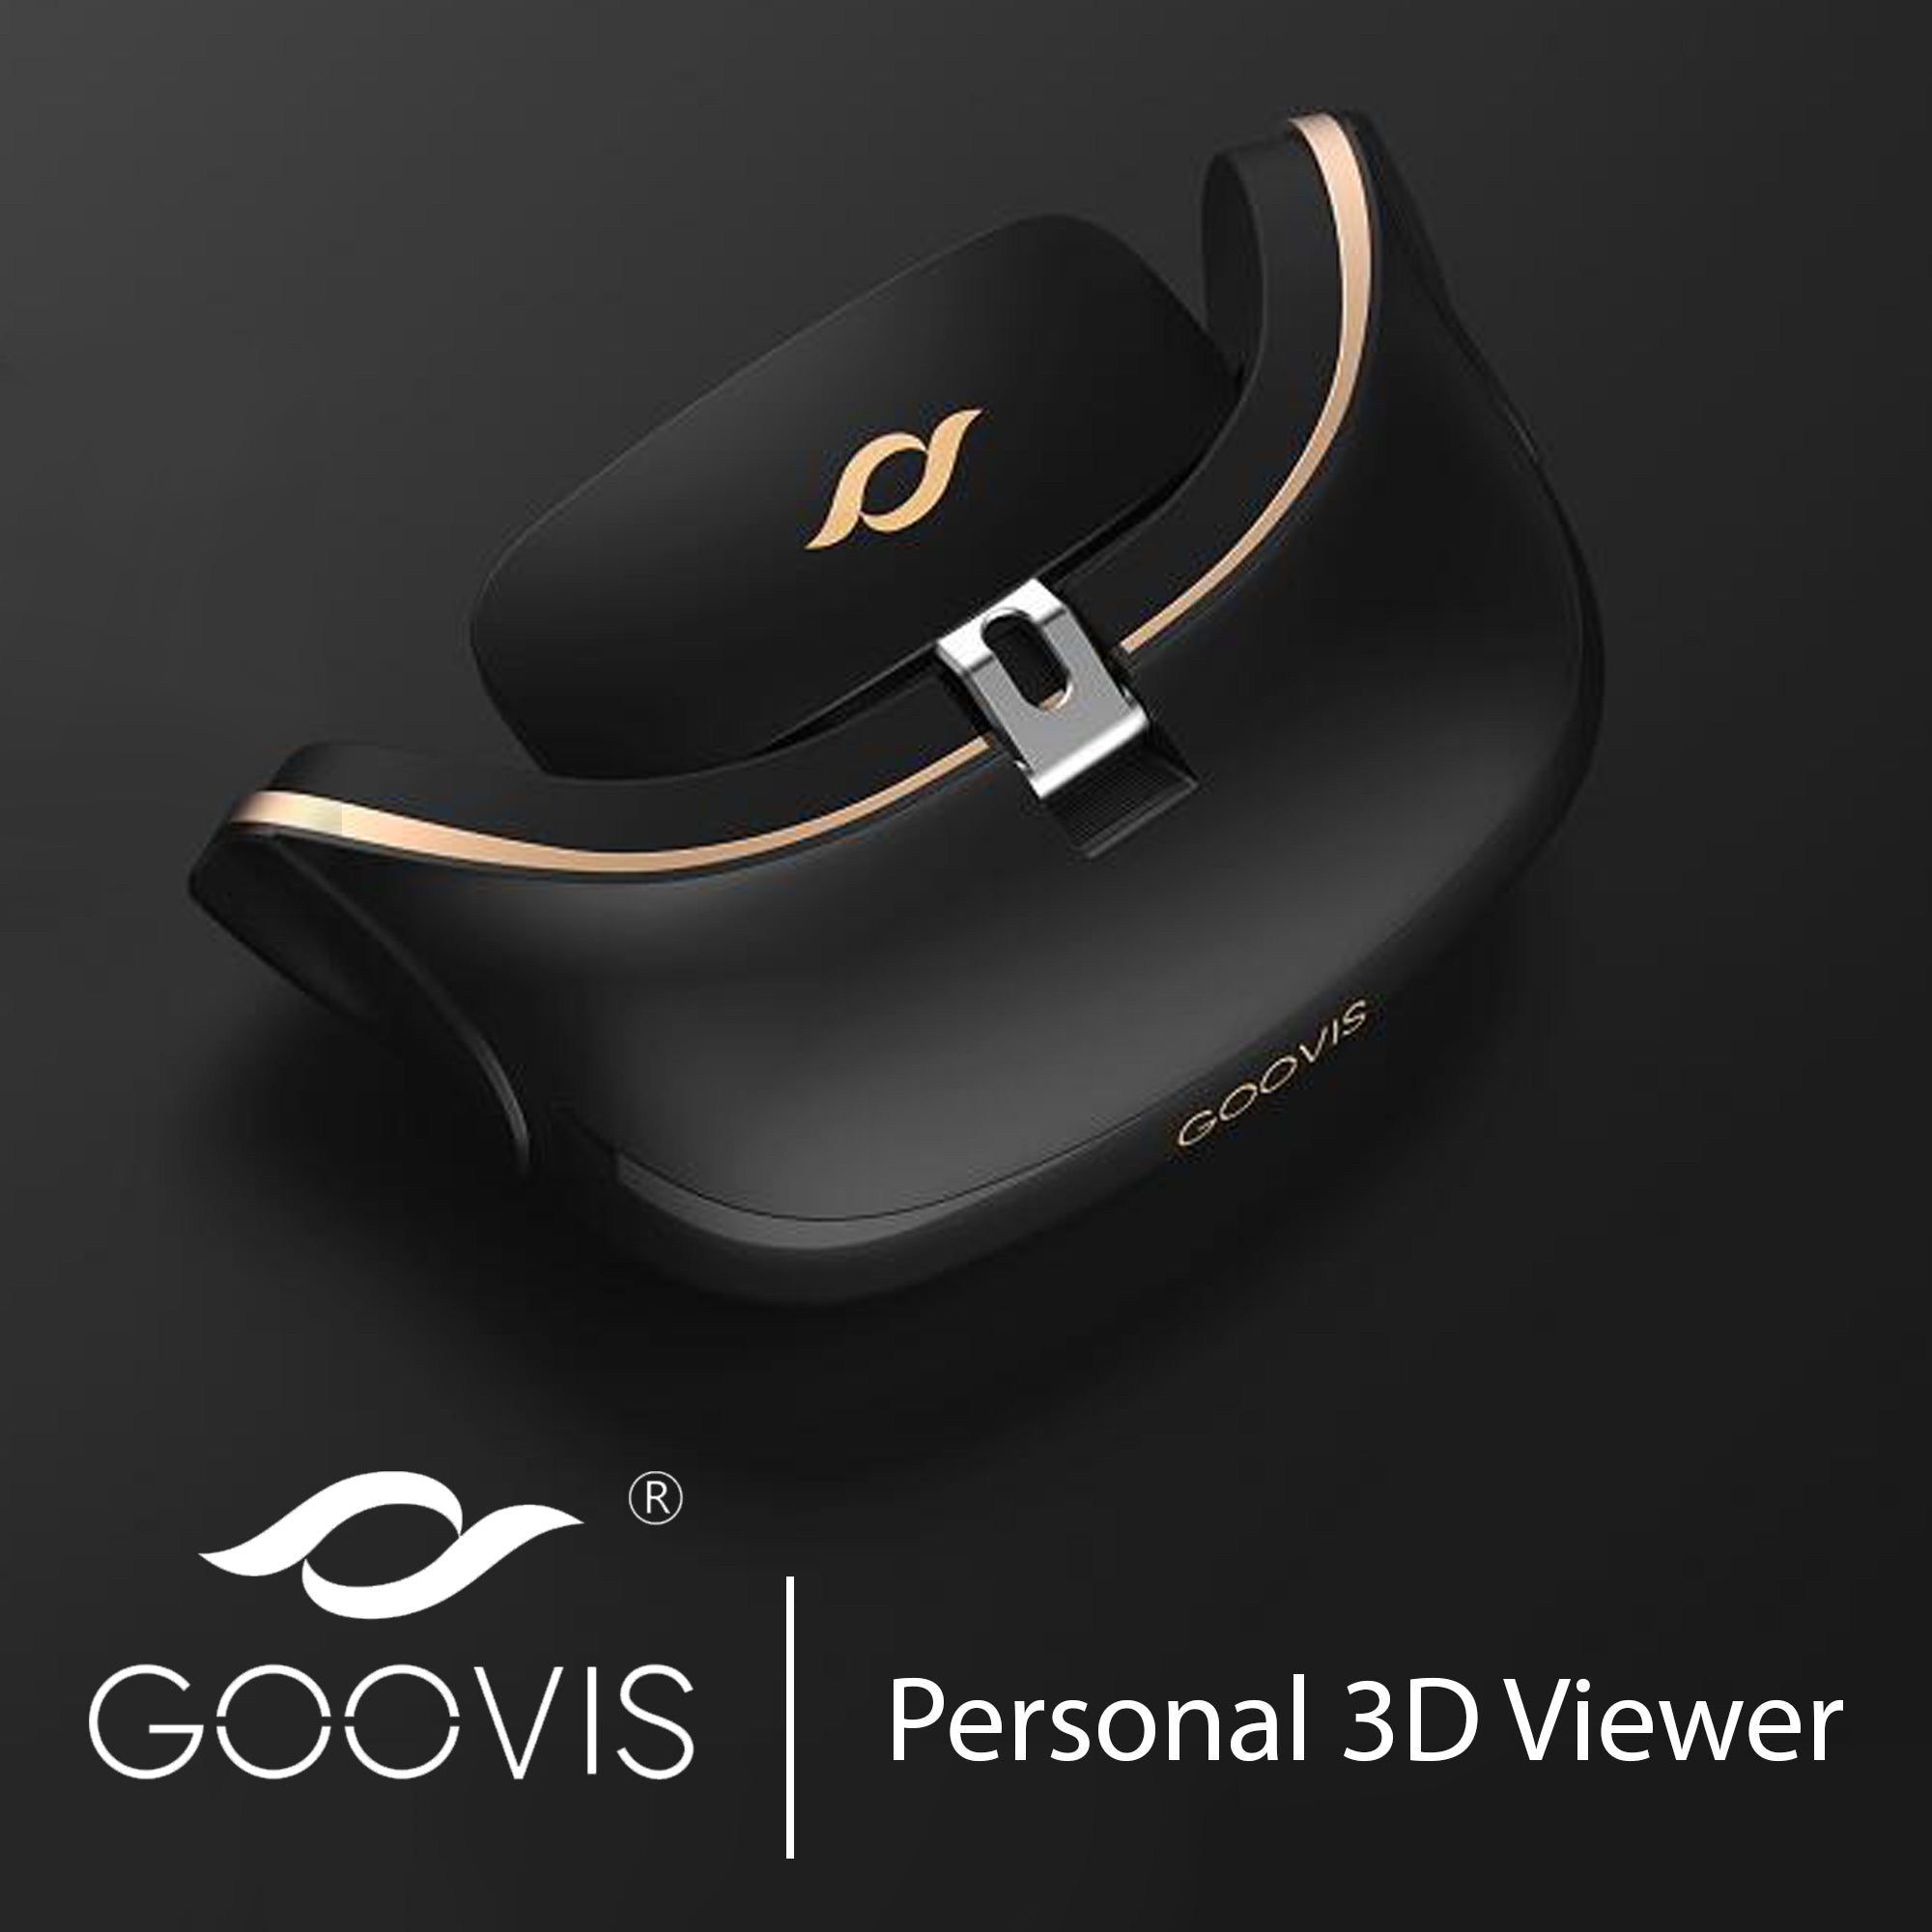 Goovis Pro Personal 3D Viewer